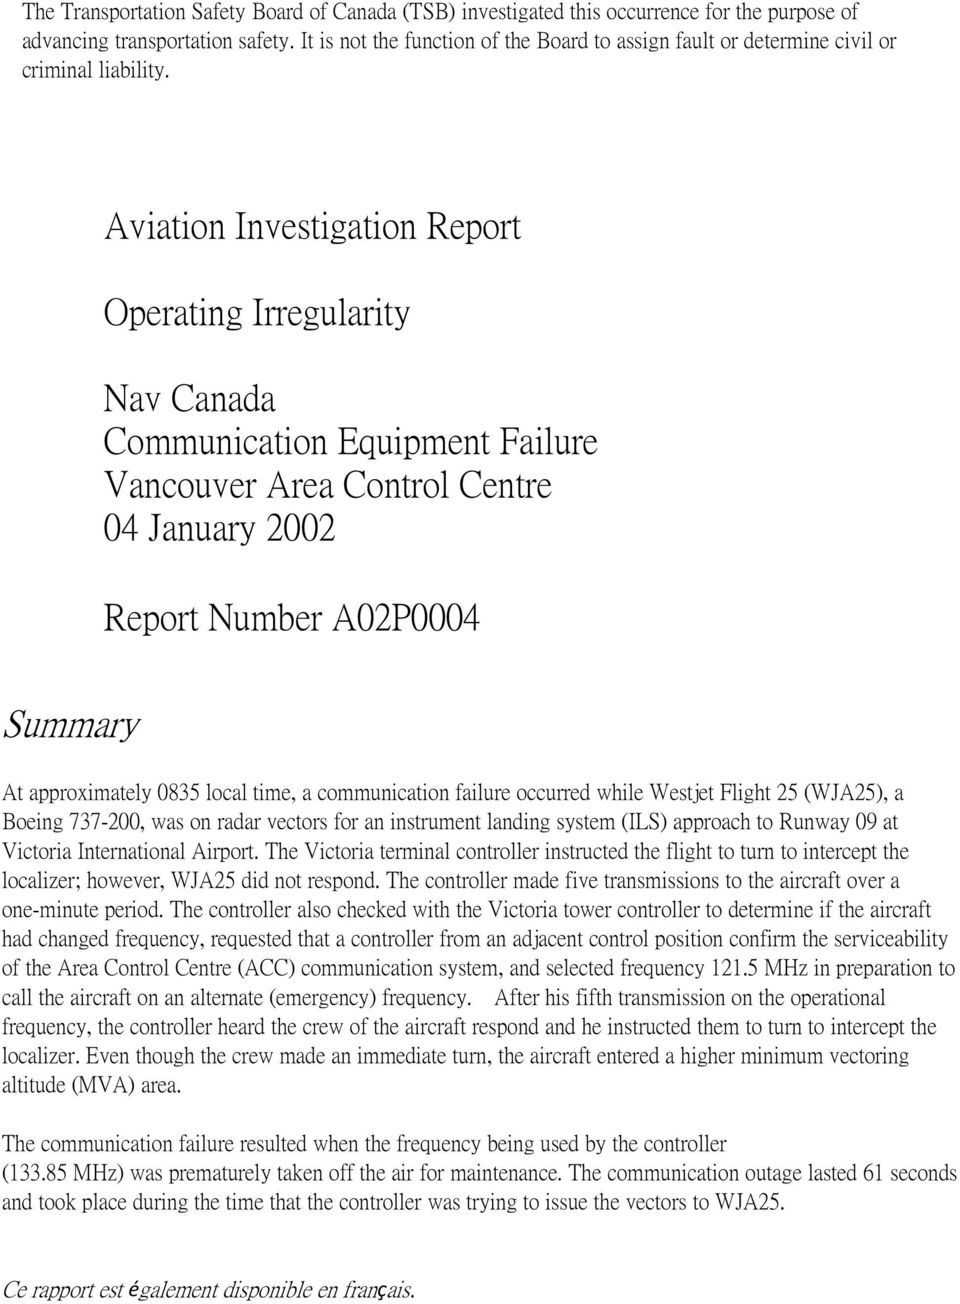 Aviation Investigation Report Operating Irregularity Nav Canada Communication Equipment Failure Vancouver Area Control Centre 04 January 2002 Report Number A02P0004 Summary At approximately 0835